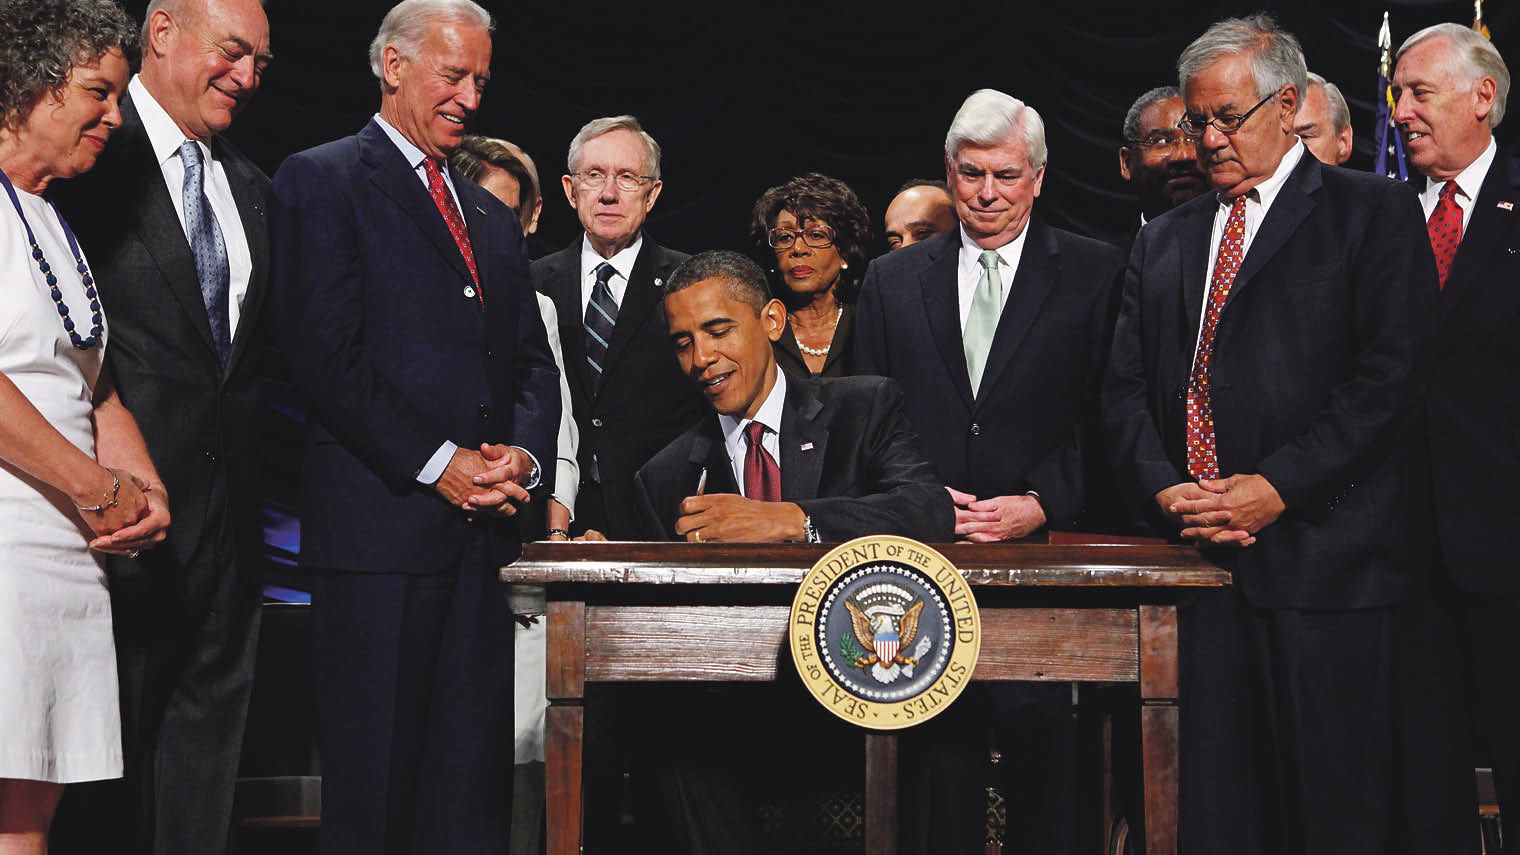 Barack Obama signing the Dodd–Frank Wall Street Reform and Consumer Protection Act into law in July 2010